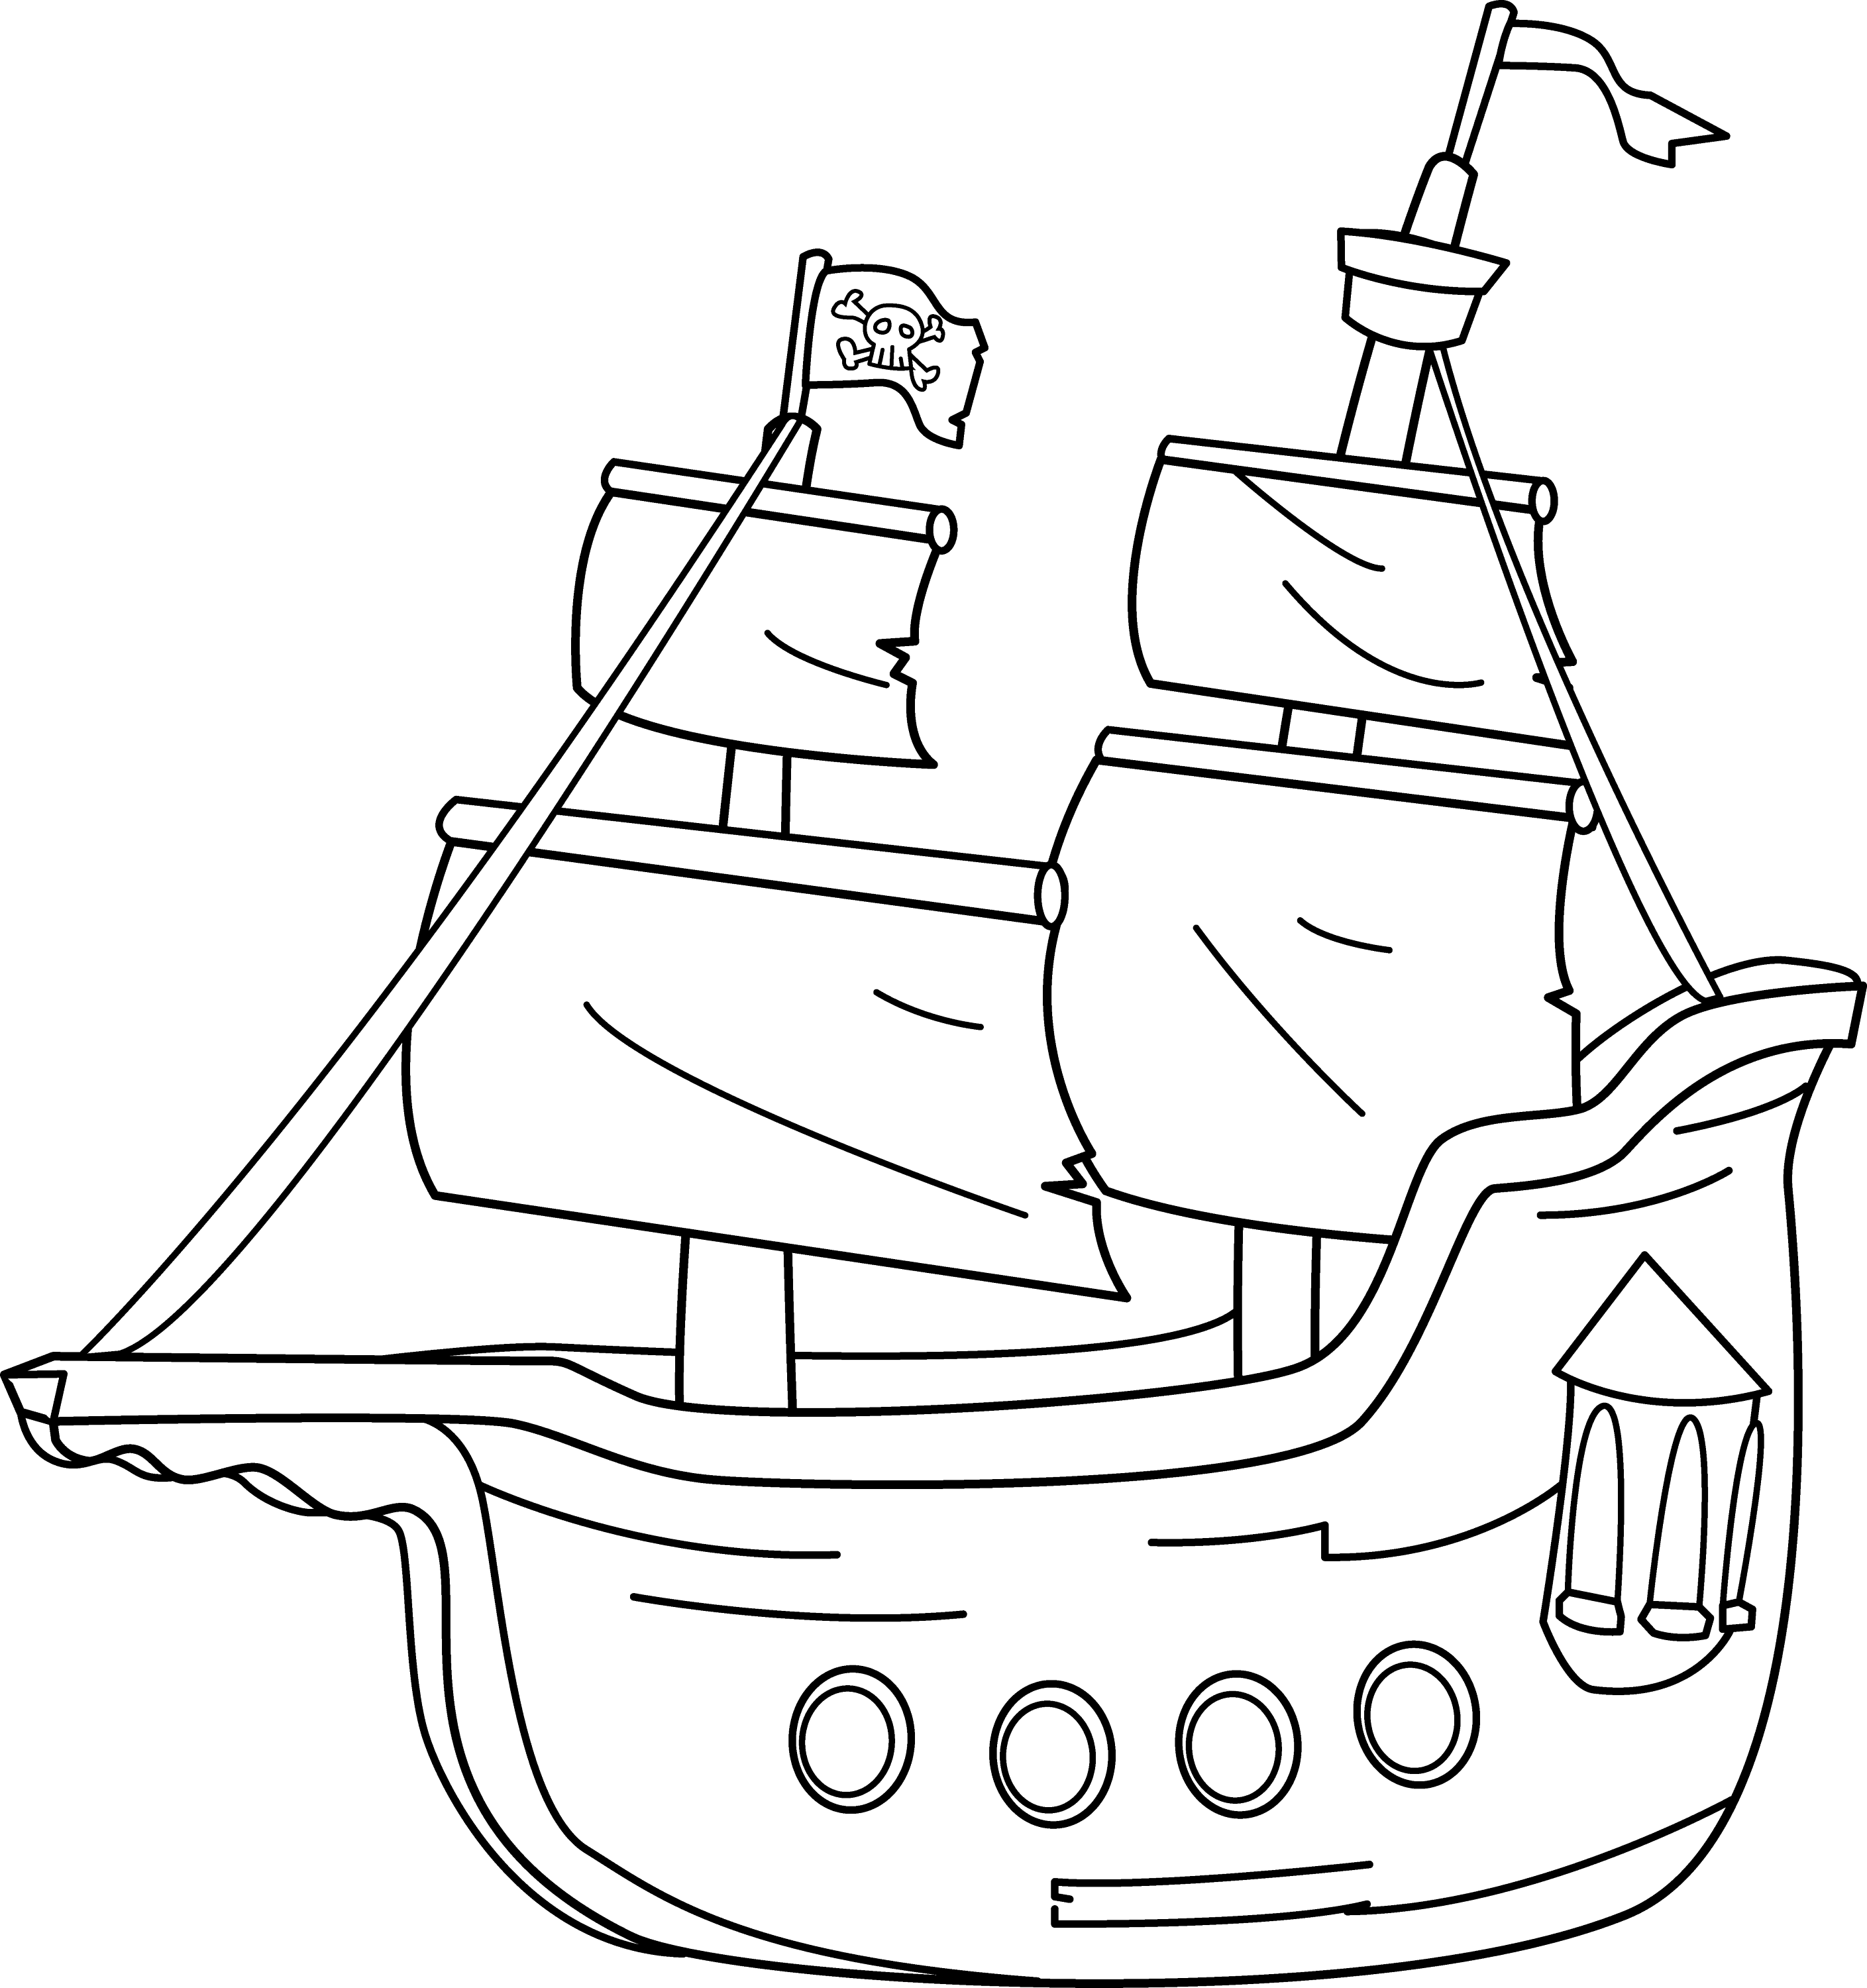 coloring ship simple pirate ship coloring pages for preschool ship coloring